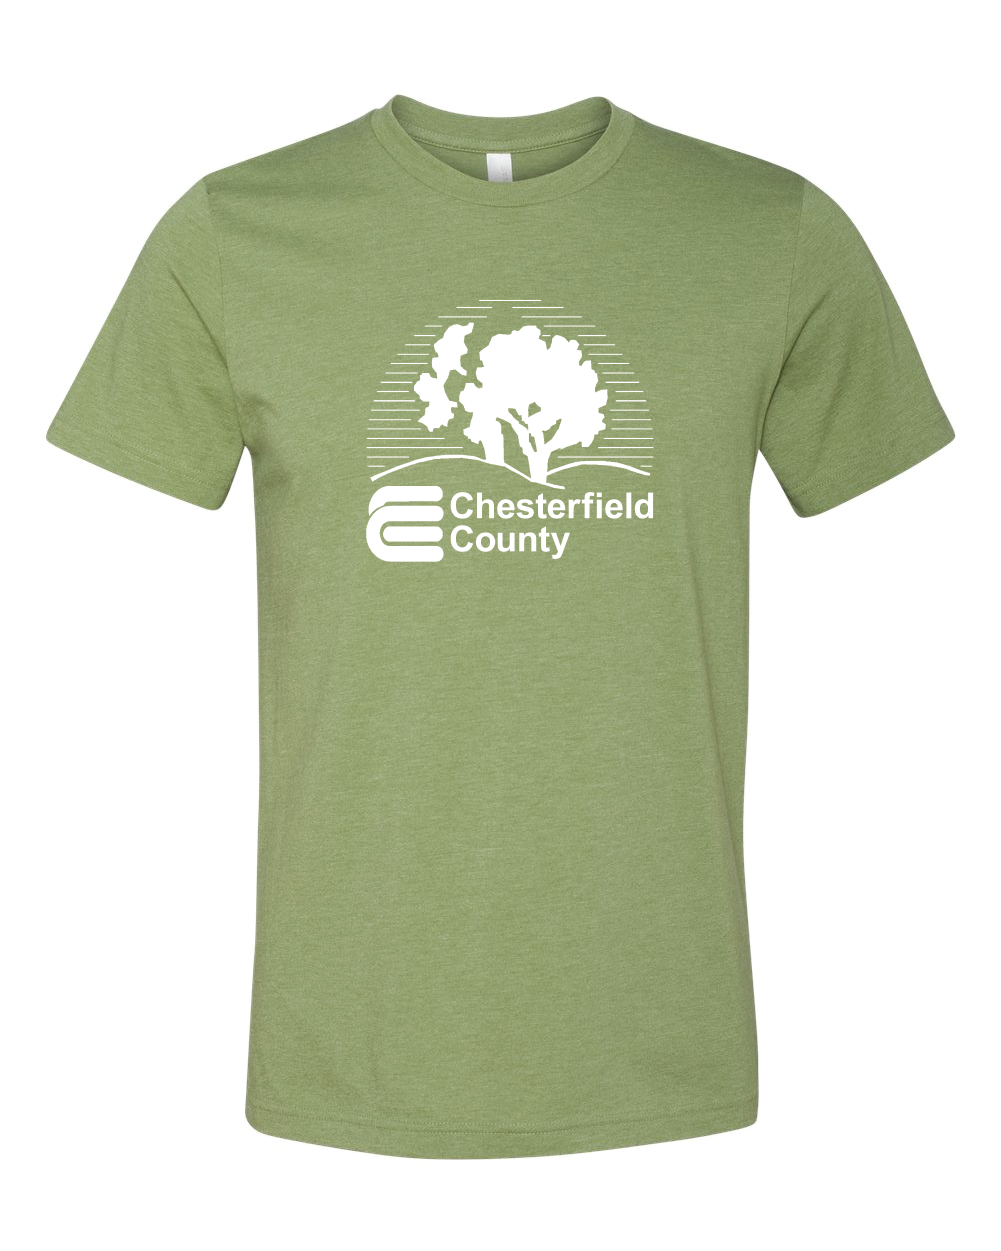 Chesterfield County (Chexit) - Tee